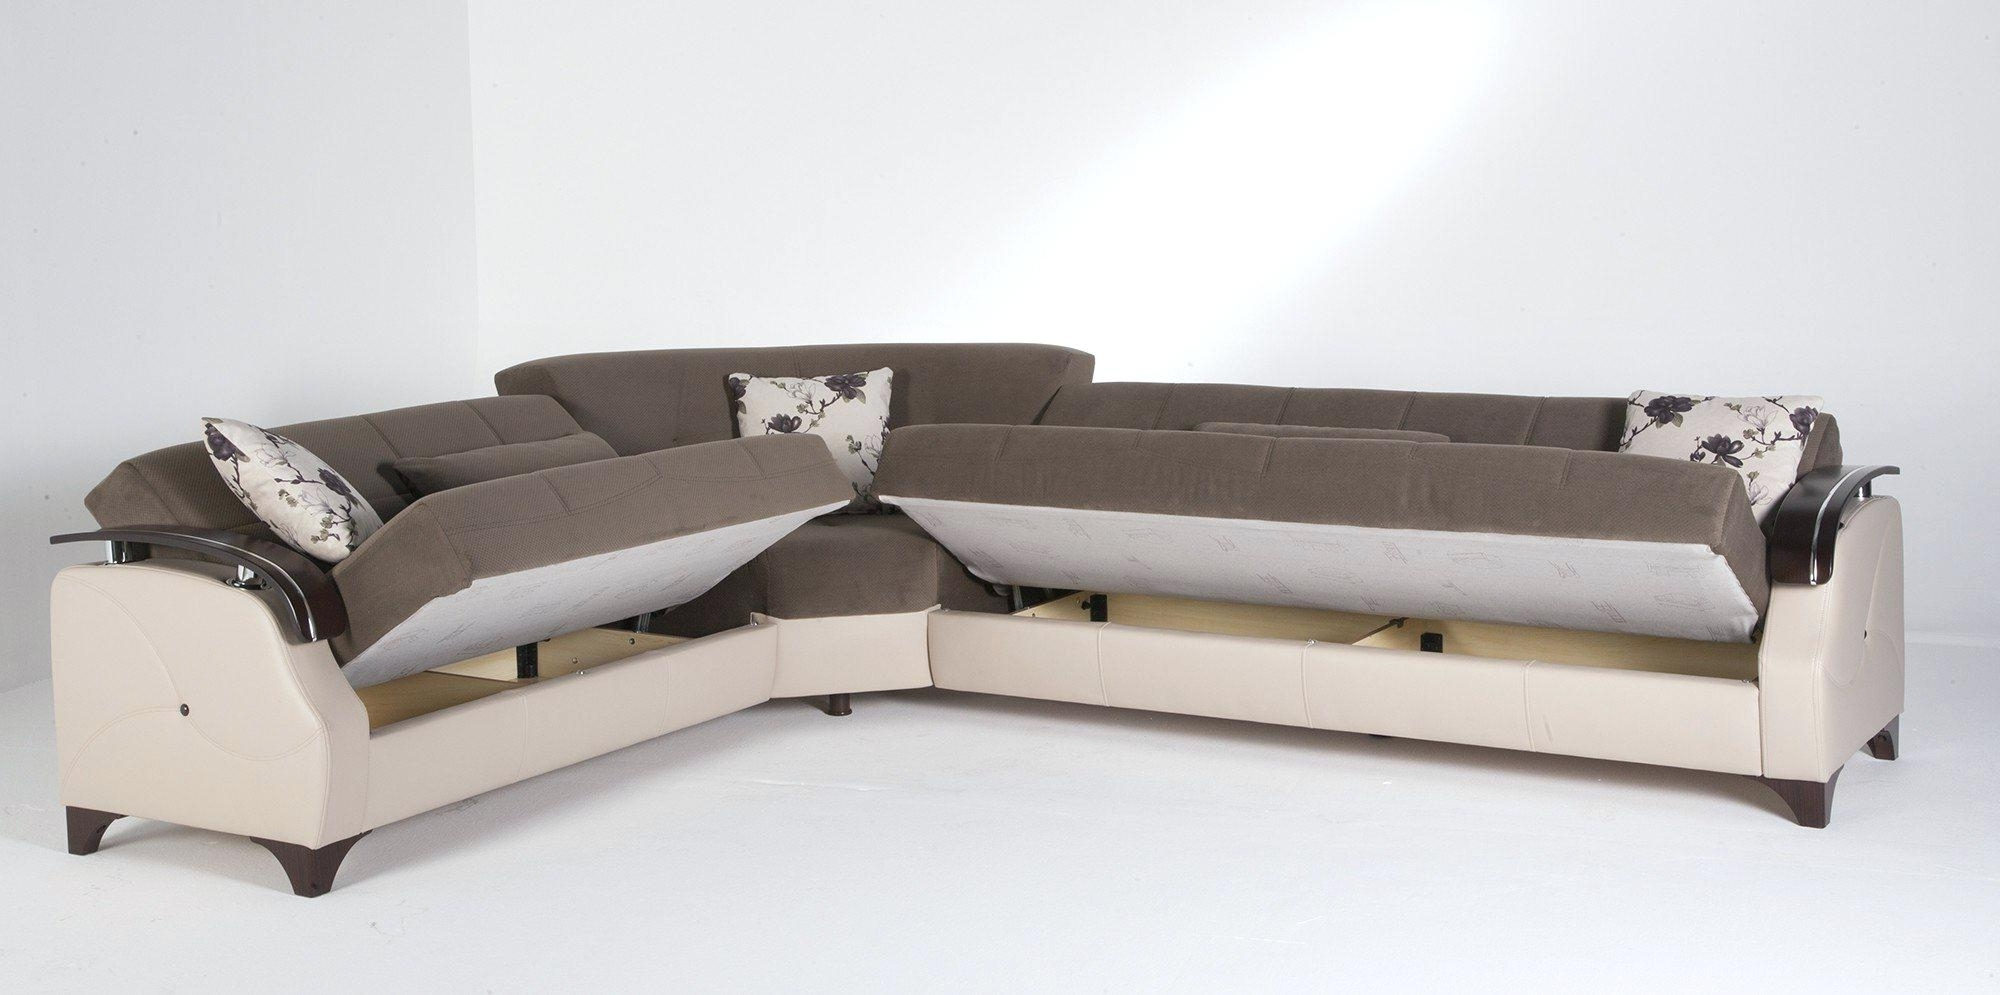 Recent Sleeper Sectionals Couches For Sale At Makro Sectional With In Reversible Chaise Sectionals (View 11 of 15)